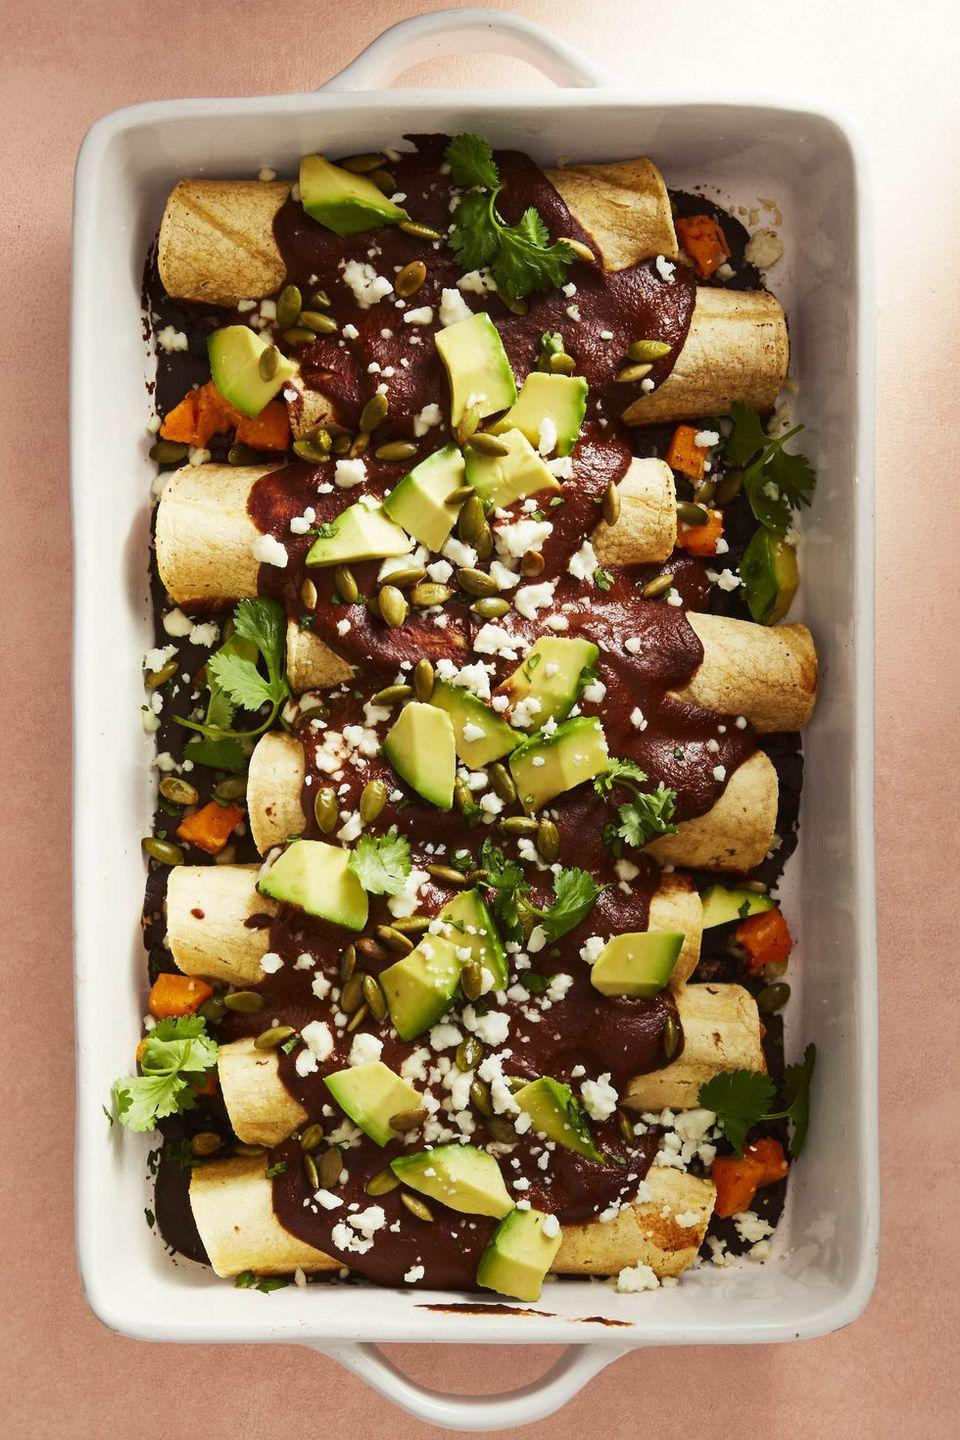 """<p>Get your fiesta on faster with these make-ahead enchiladas. The tortillas can be filled, wrapped, and frozen up to two months without the sauce. Or, you can keep the whole casserole assembled in the fridge for up to a day before baking.</p><p><em><a href=""""https://www.goodhousekeeping.com/food-recipes/healthy/a47527/butternut-mole-enchiladas-recipe/"""" rel=""""nofollow noopener"""" target=""""_blank"""" data-ylk=""""slk:Get the recipe for Butternut Mole Enchiladas »"""" class=""""link rapid-noclick-resp"""">Get the recipe for Butternut Mole Enchiladas » </a></em></p><p><strong>RELATED: </strong><a href=""""https://www.goodhousekeeping.com/food-recipes/easy/g4254/enchiladas/"""" rel=""""nofollow noopener"""" target=""""_blank"""" data-ylk=""""slk:30+ Easy Enchilada Recipes Your Dinner Rotation Has Been Missing"""" class=""""link rapid-noclick-resp"""">30+ Easy Enchilada Recipes Your Dinner Rotation Has Been Missing</a></p>"""